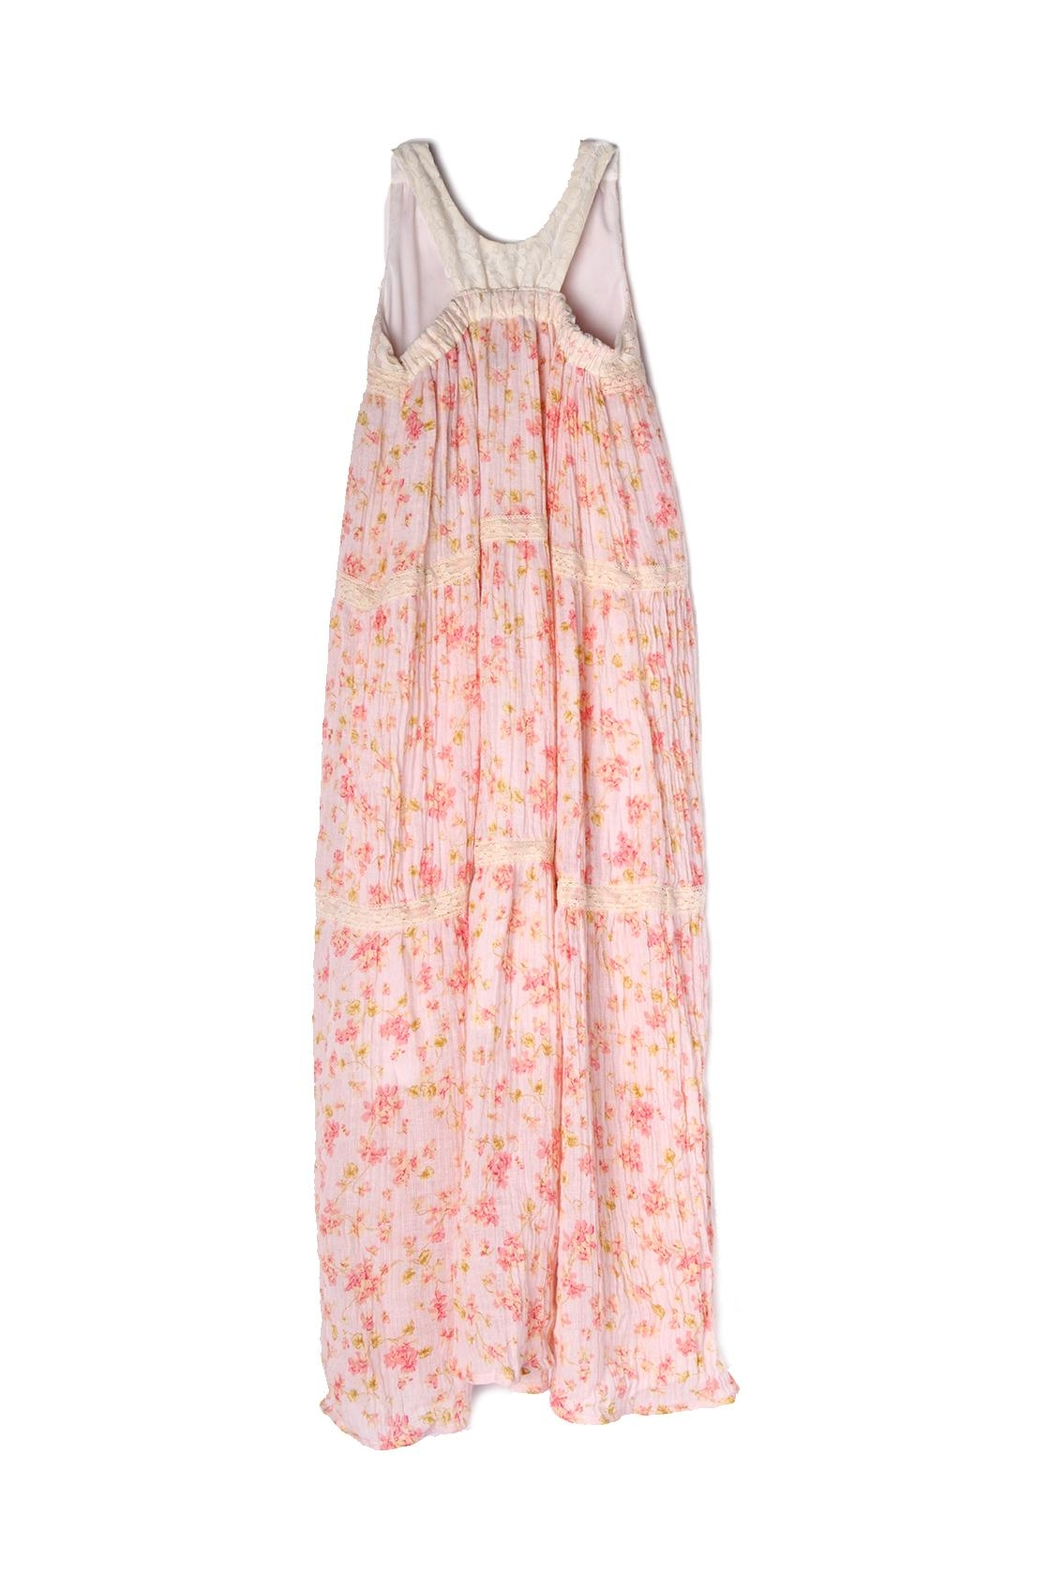 Isobella and Chloe Pretty-In-Pink Maxi Dress - Front Full Image